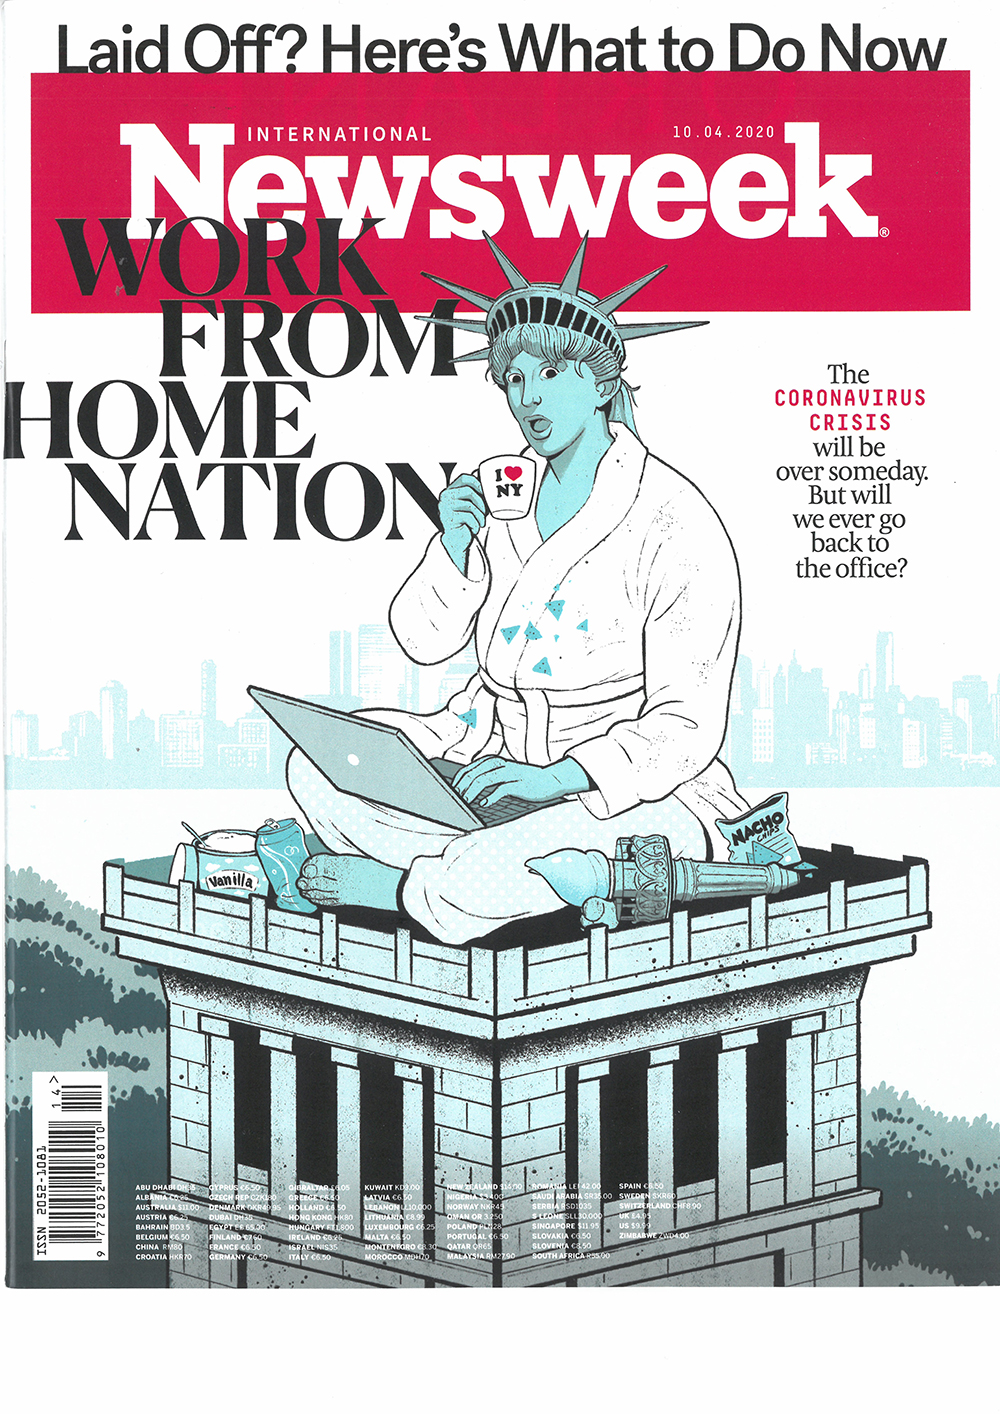 NewsWeekInternational